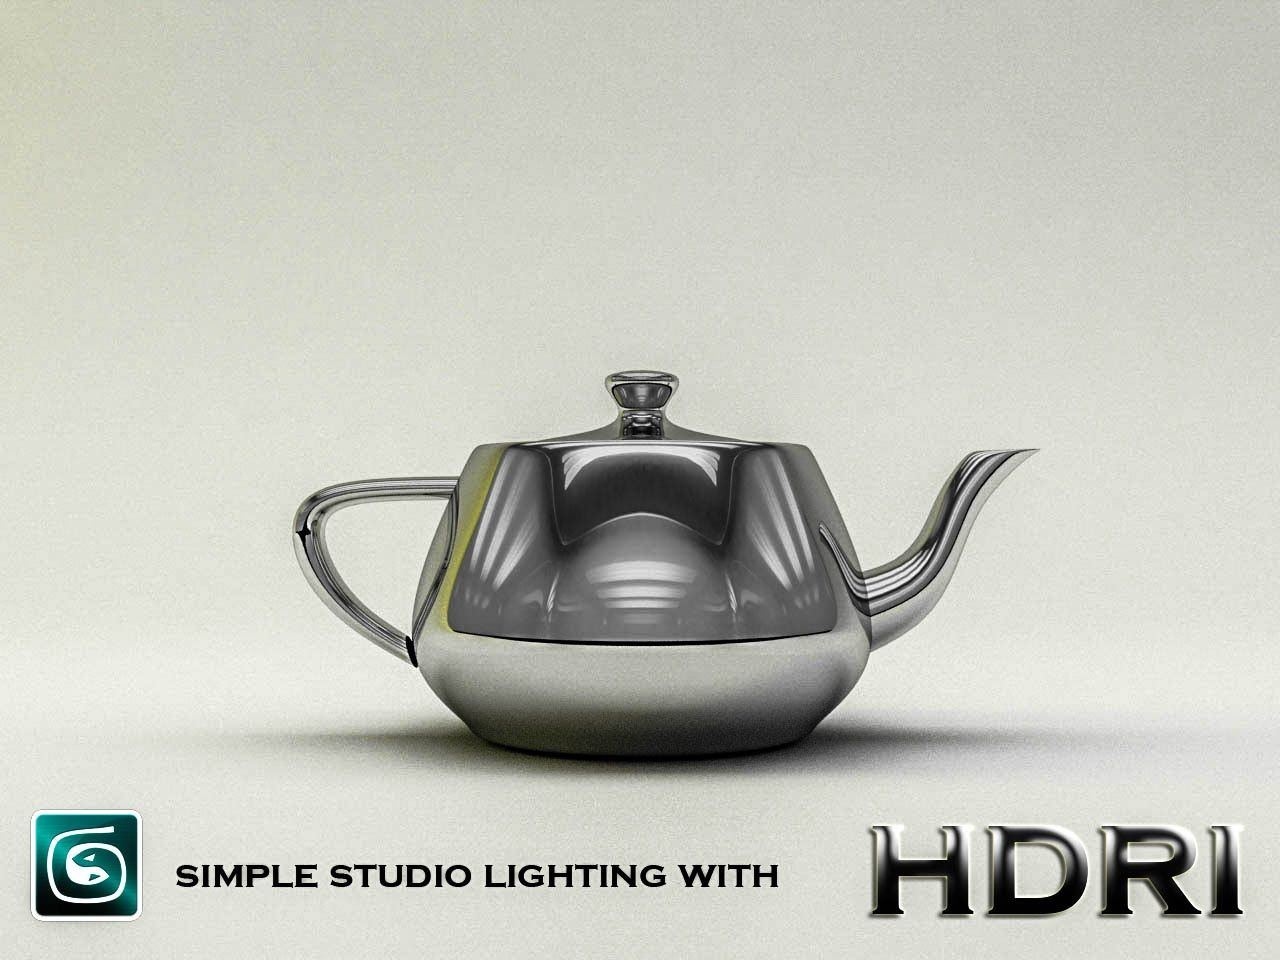 vray render settings in 3ds max pdf